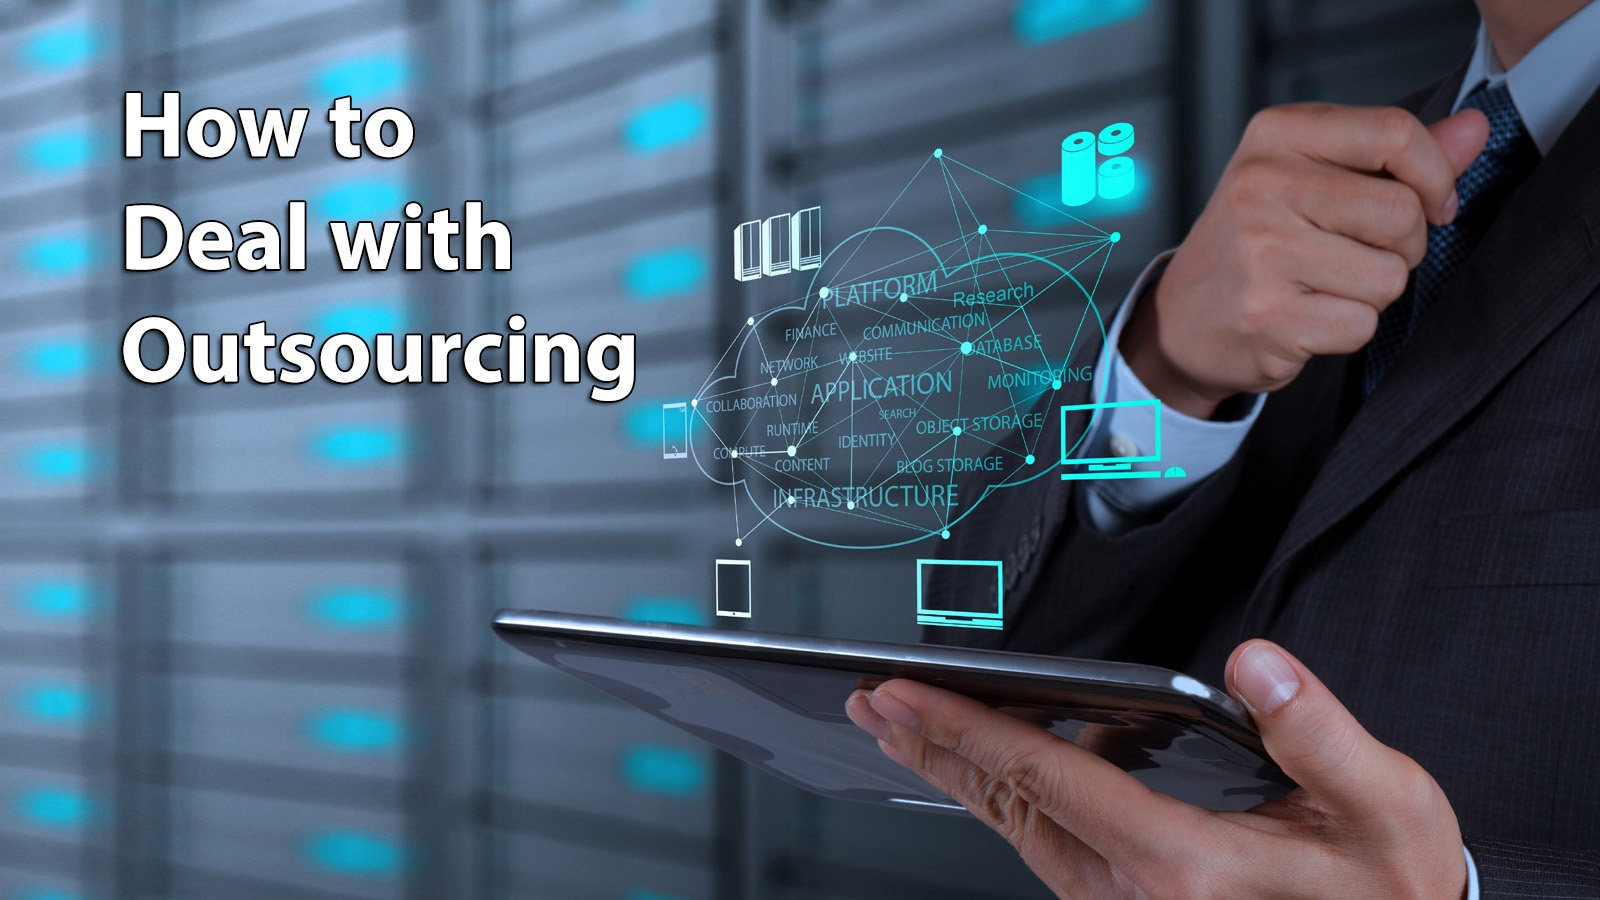 How to Deal with Outsourcing